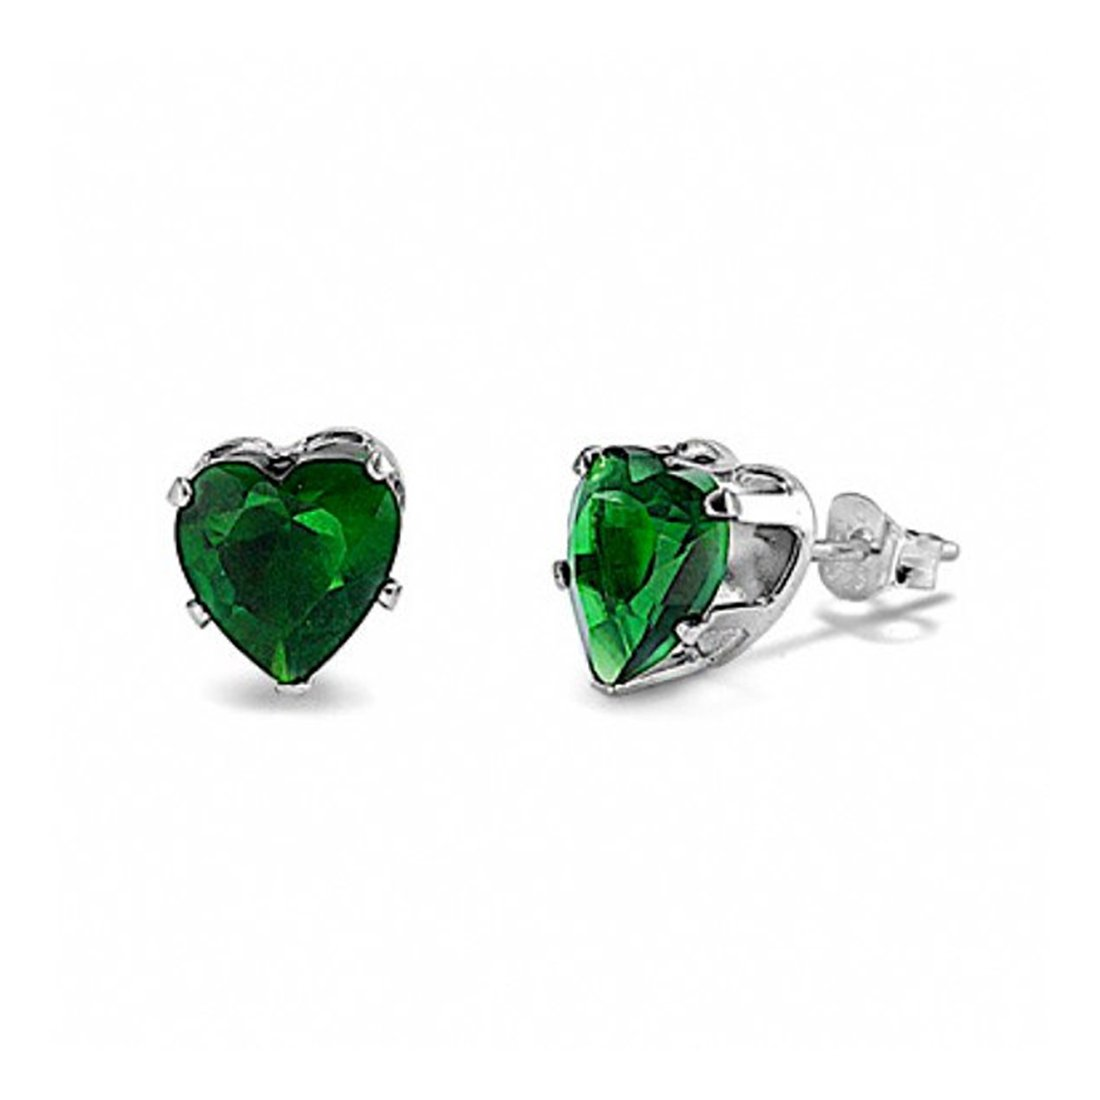 Solitaire Heart Stud Earrings Simulated Green Emerald 925 Sterling Silver